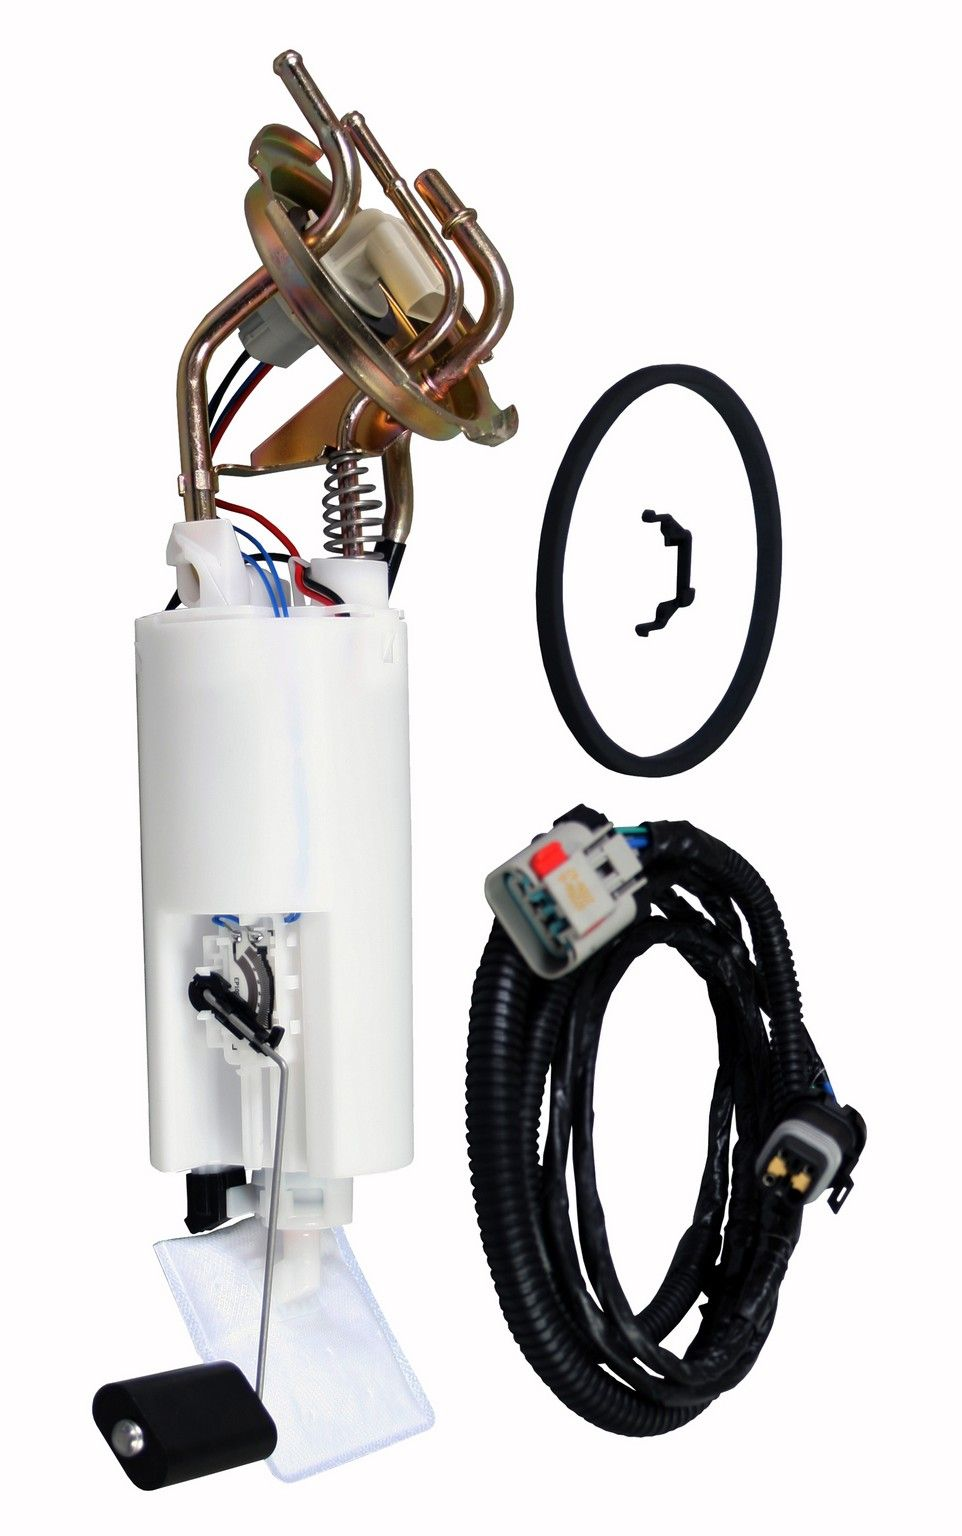 Dodge Grand Caravan Fuel Pump Module Assembly Replacement Airtex 2011 Wiring Diagram Includes Sending Unit Float Reservoir Strainer And Tank Seal Harness Included 9206 1996